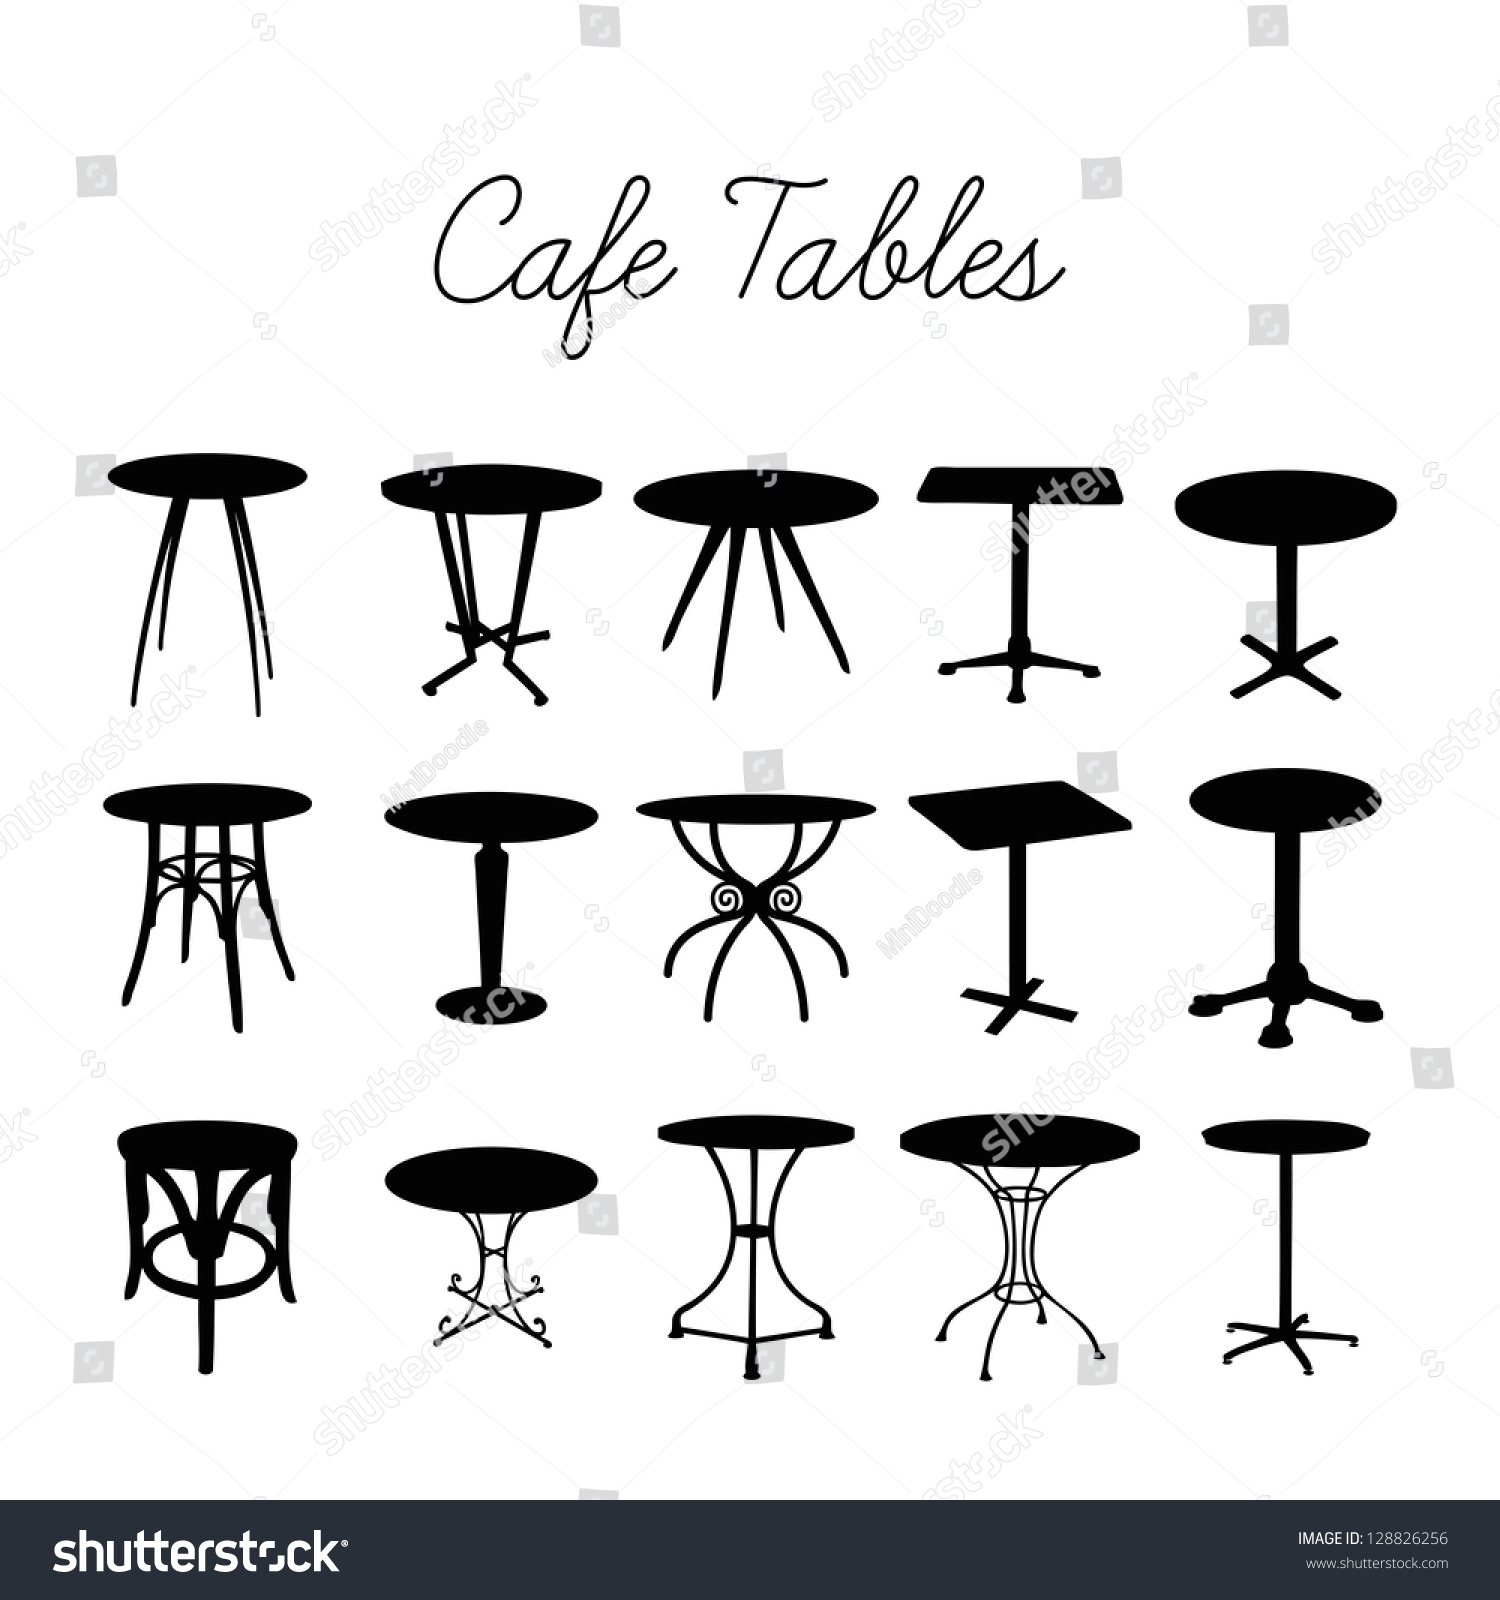 Vector Cafe Table Collection Silhouette Bar Stock Vector  : stock vector vector cafe table collection silhouette bar stools 128826256 from www.shutterstock.com size 1500 x 1600 jpeg 273kB